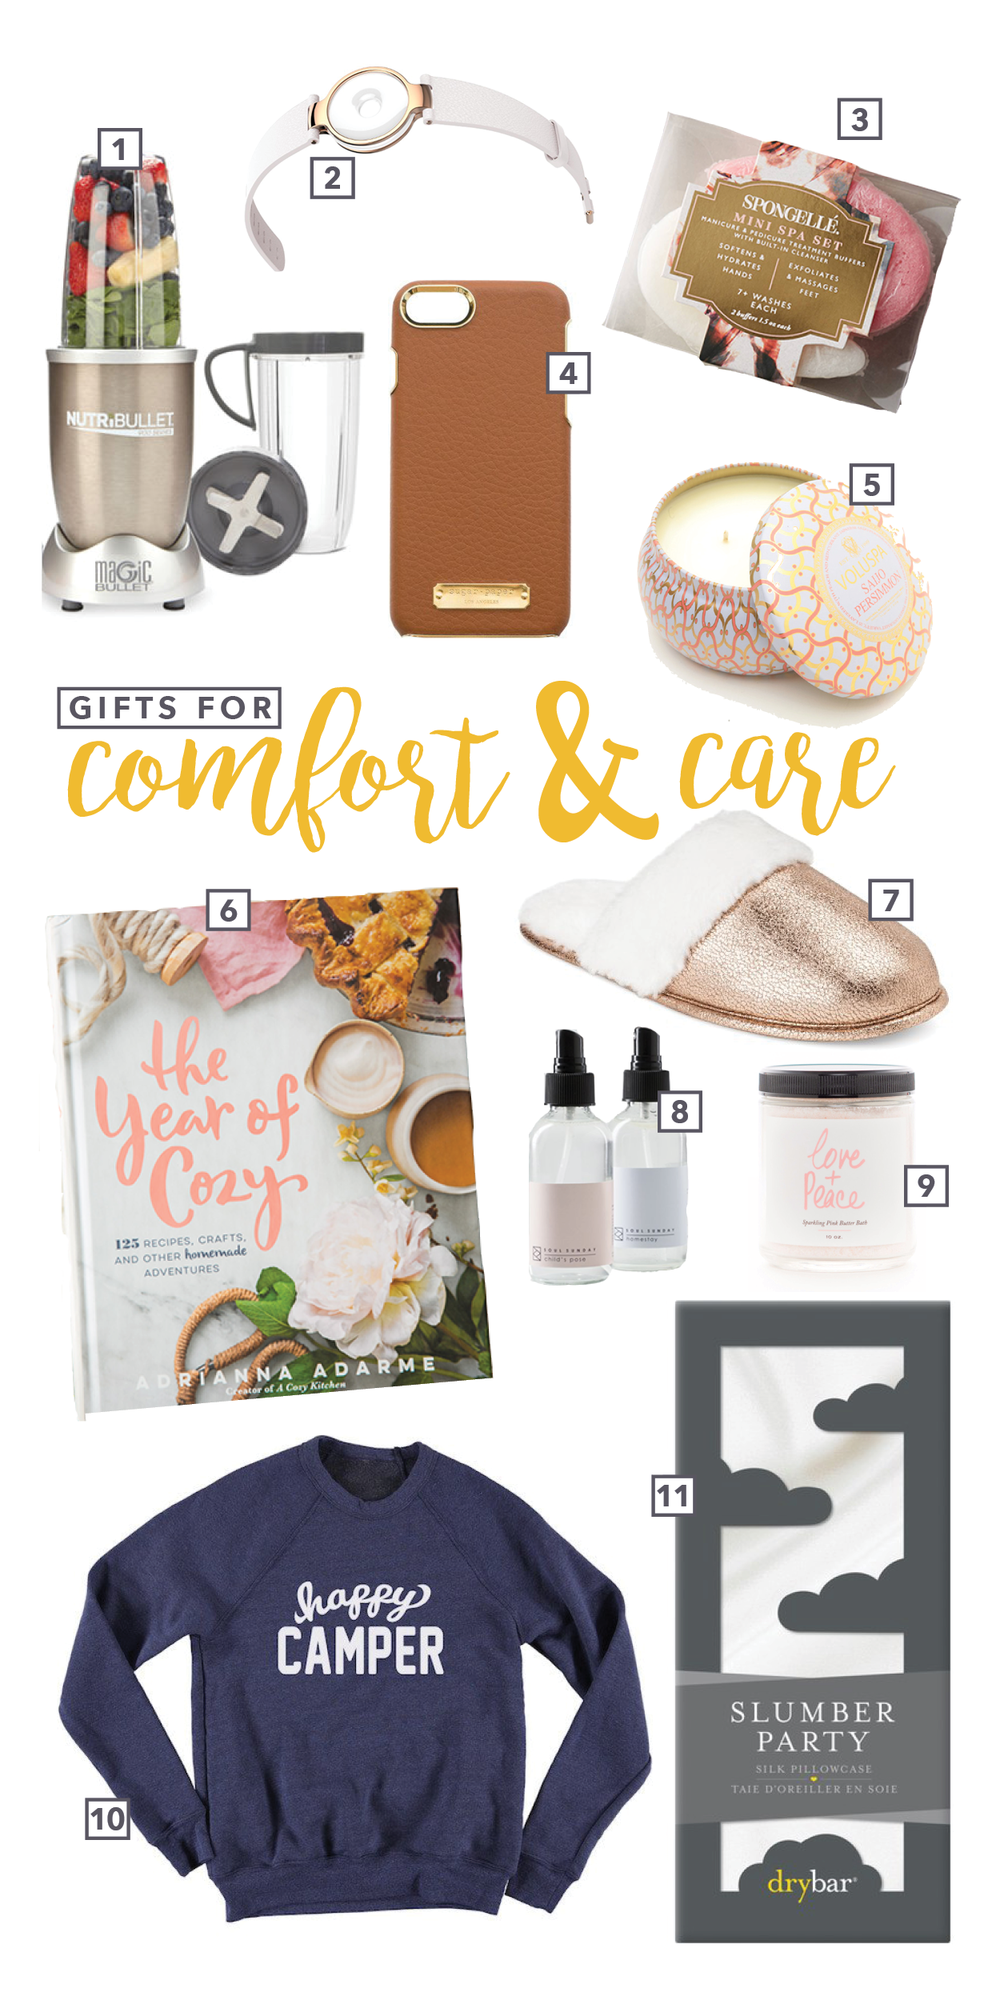 Spire & Co Gifts for Comfort and Care